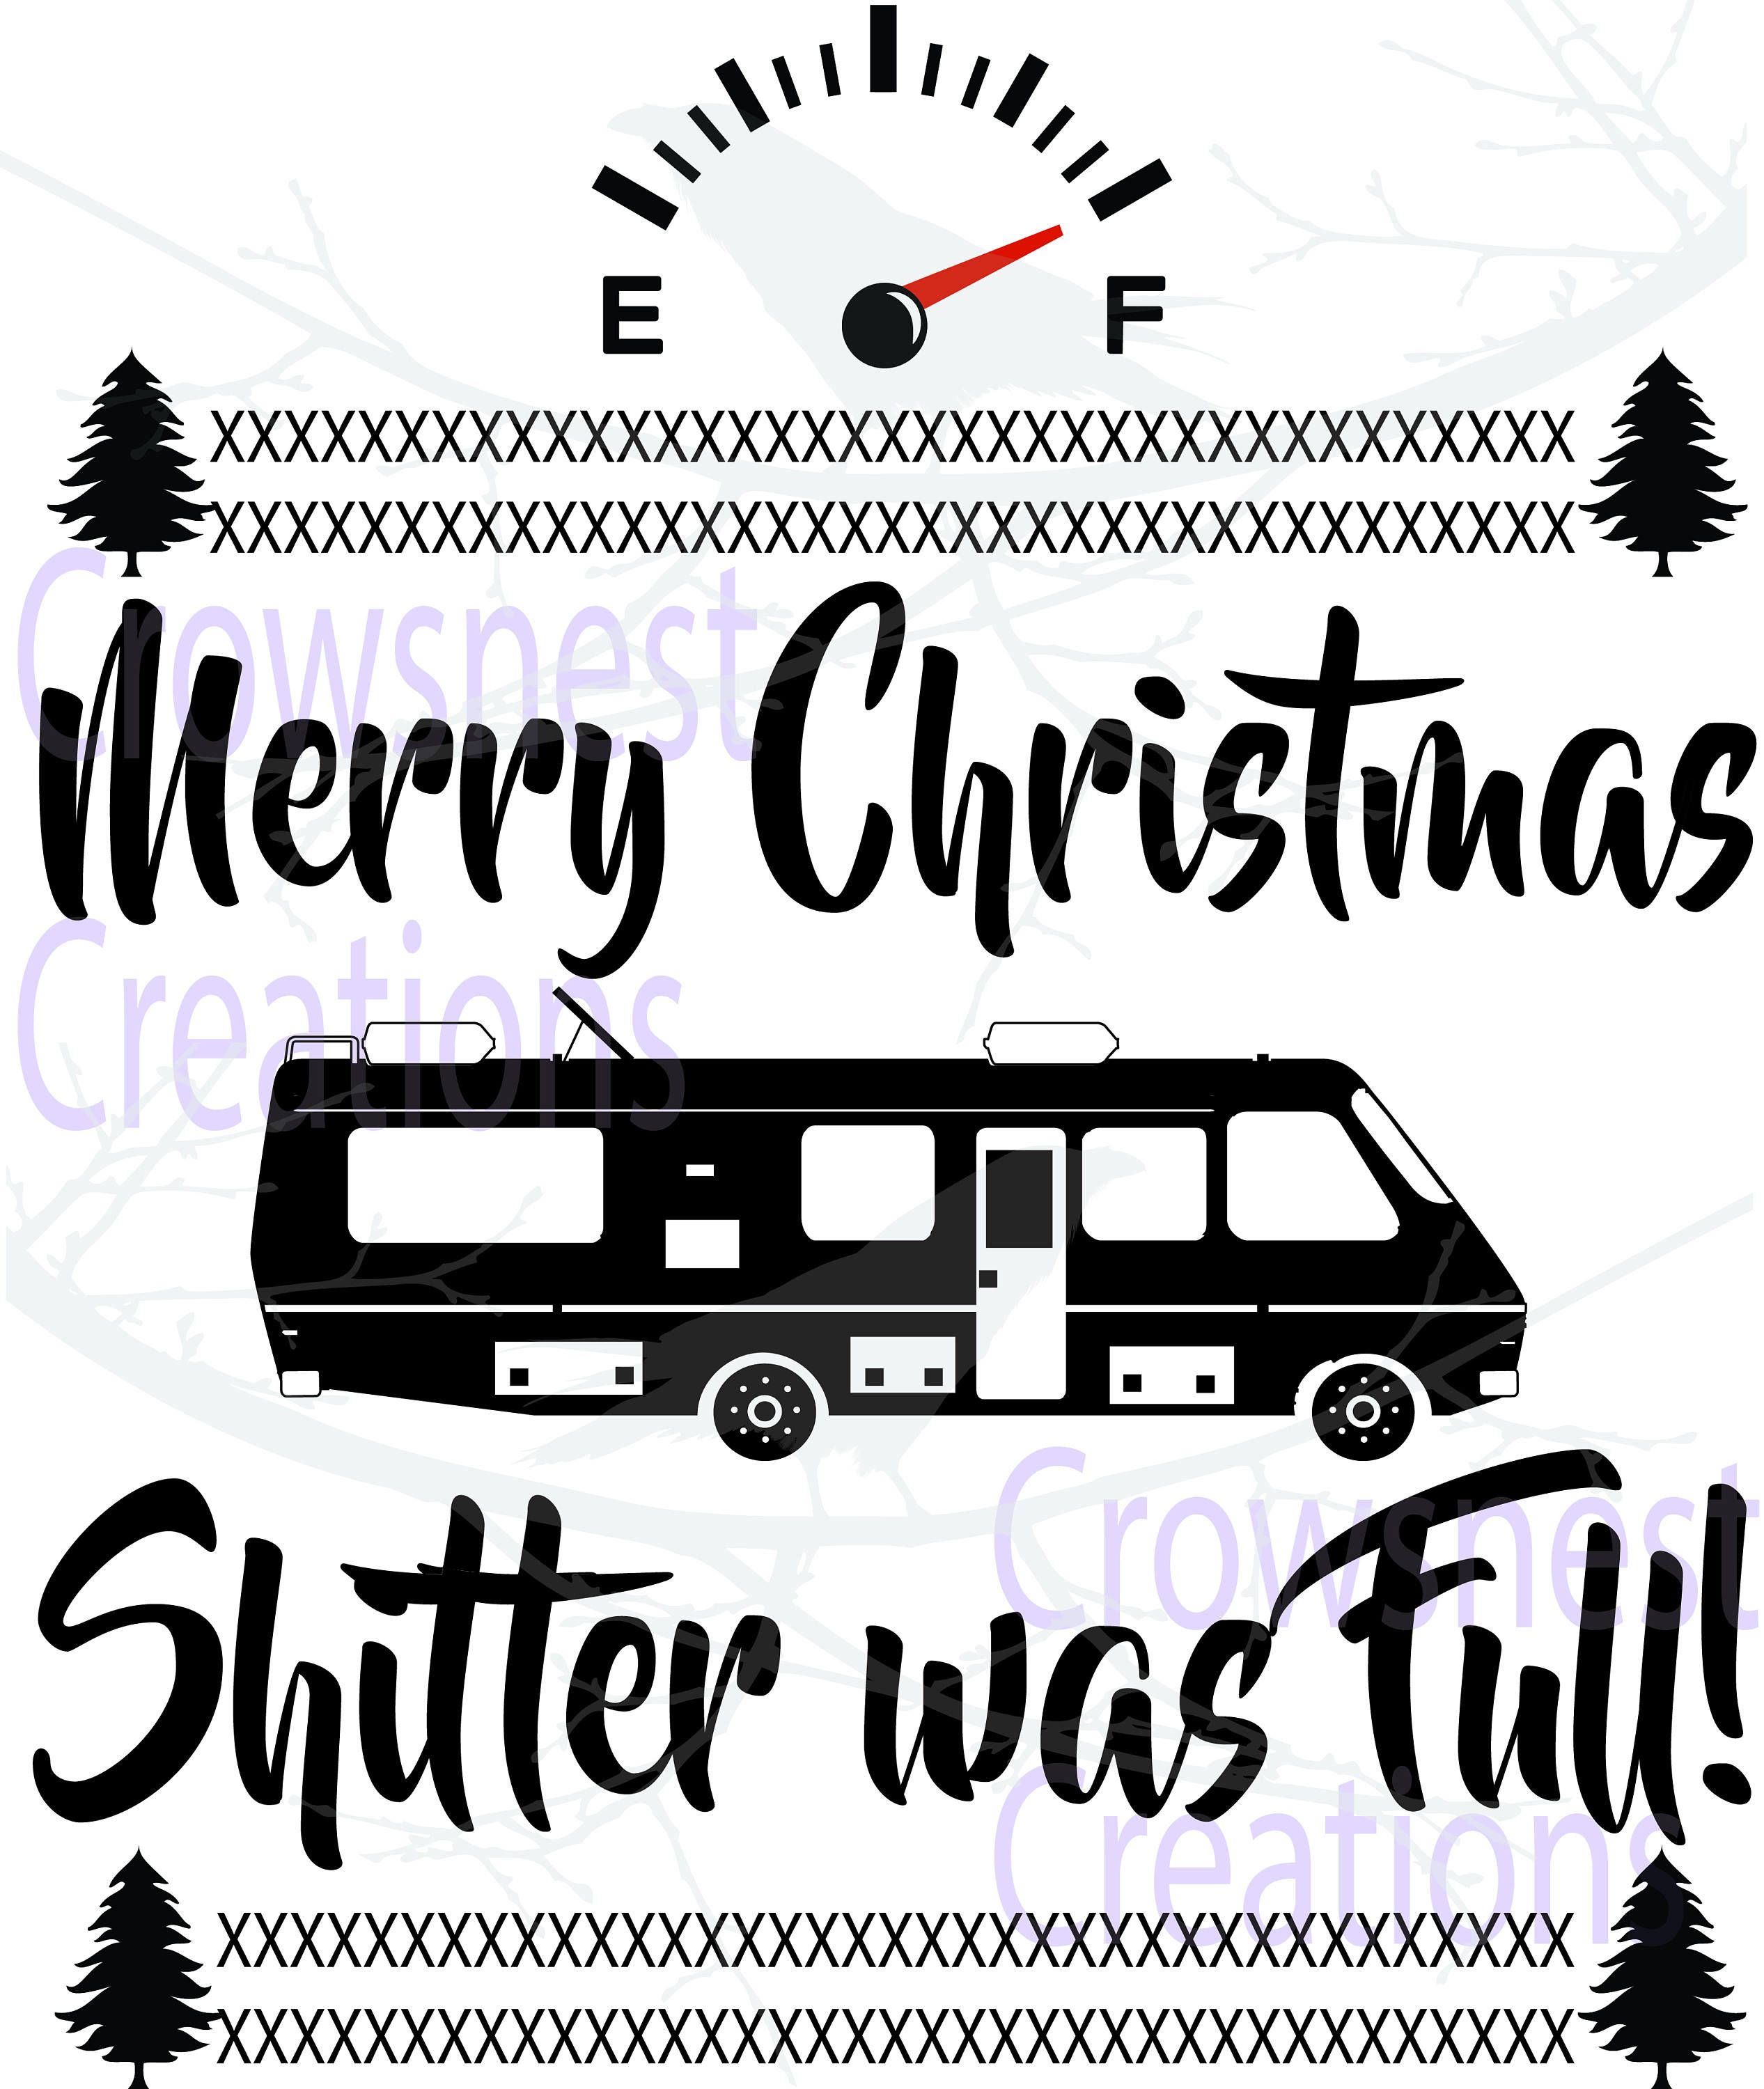 Merry Christmas Shitters Full Quote: Pin By Crowsnest Cre8tions On Digital Downloads Available